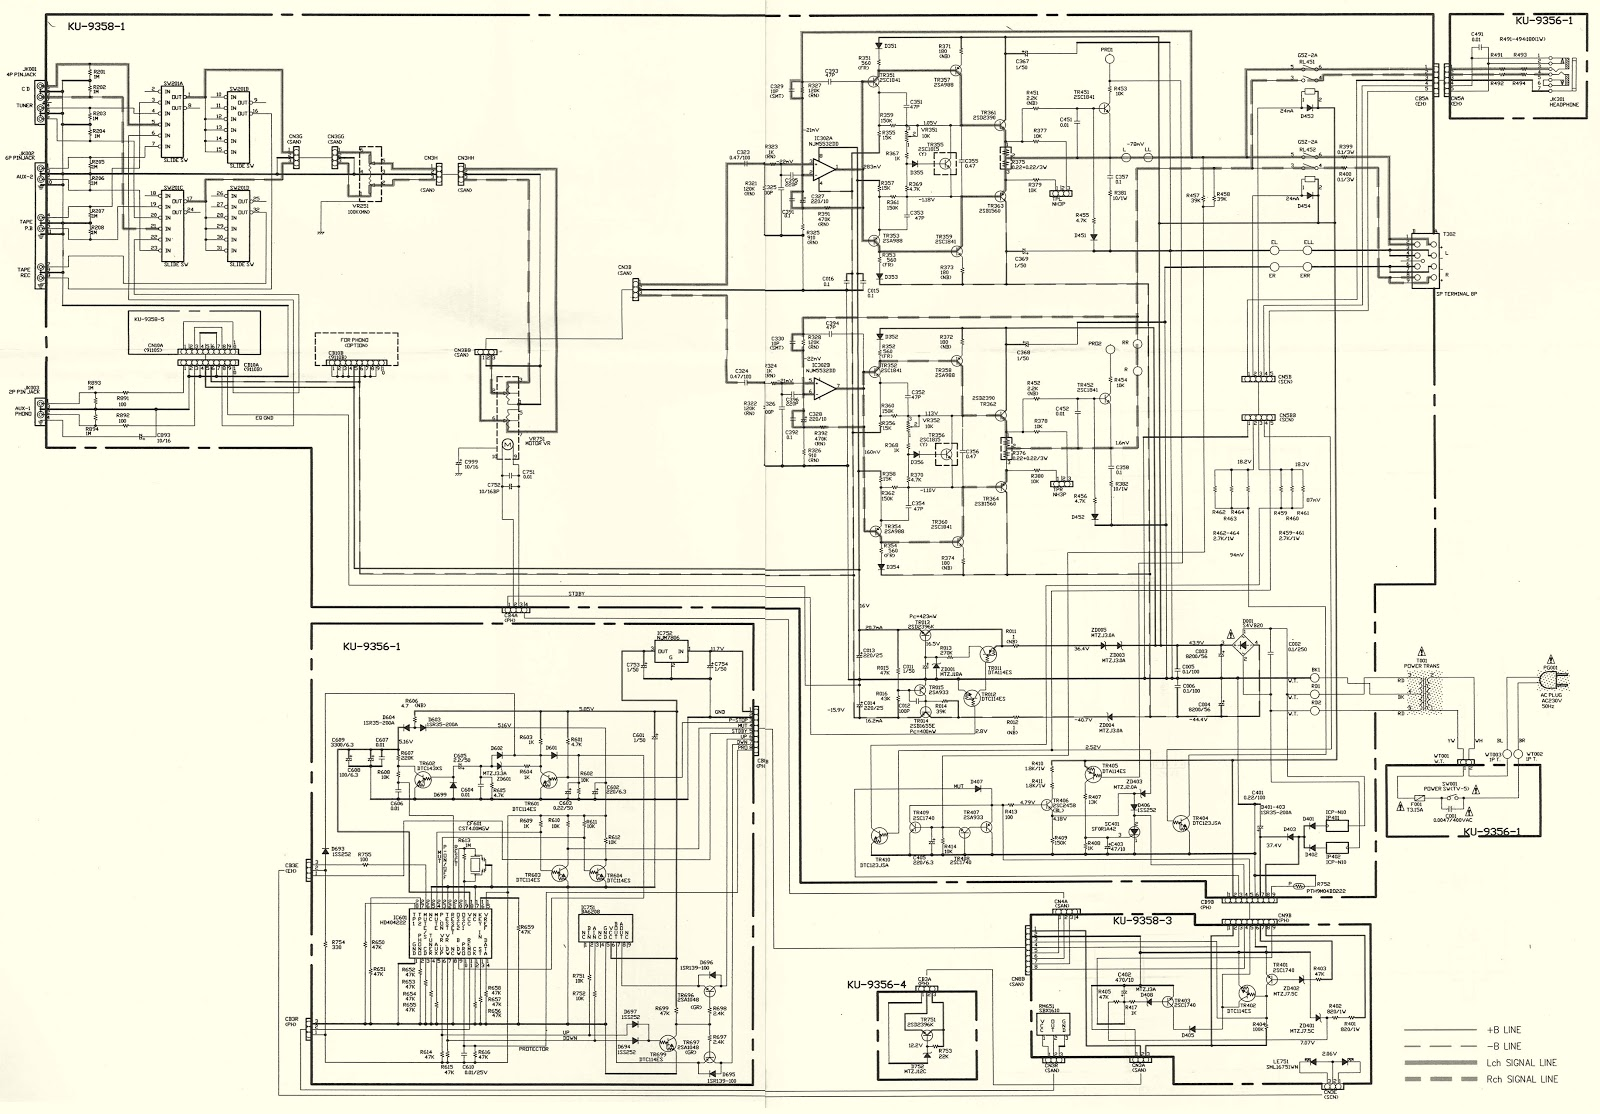 Circuit Diagram Of Hi Fi Amplifier 25w Hifi Audio With Mosfet Denon Pma 350se Integrated Stereo Schematic Idling